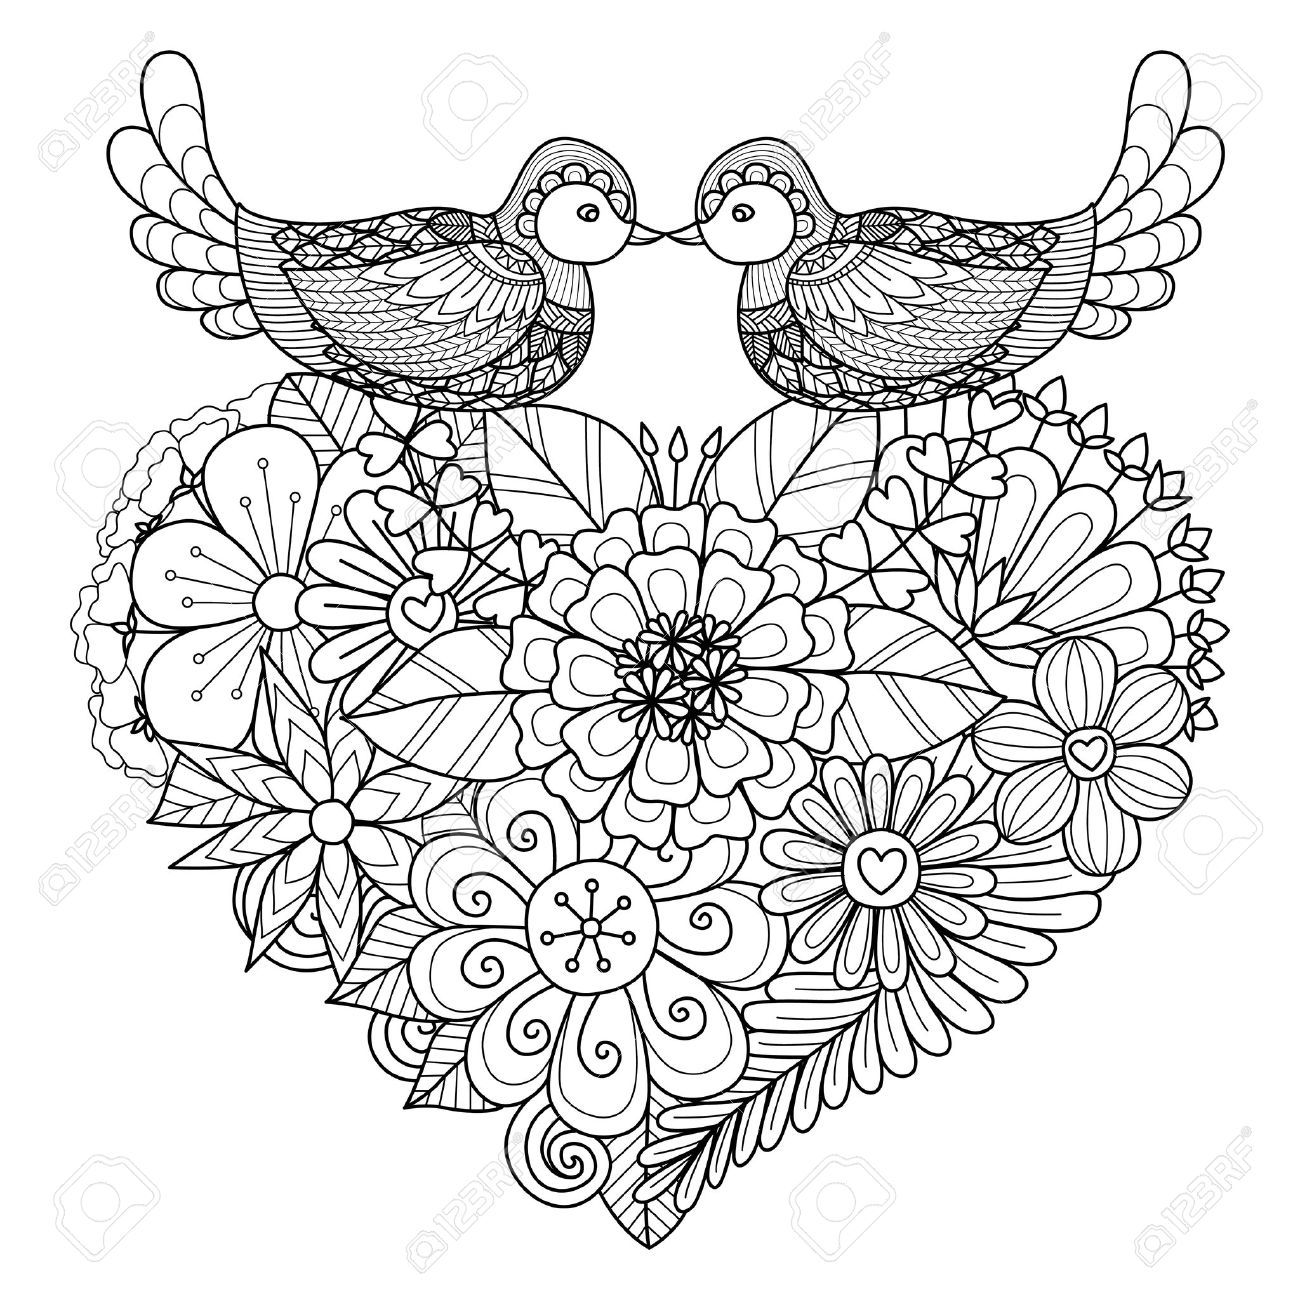 Two Birds Kissing Above Floral Heart Shape Nest For Coloring Page